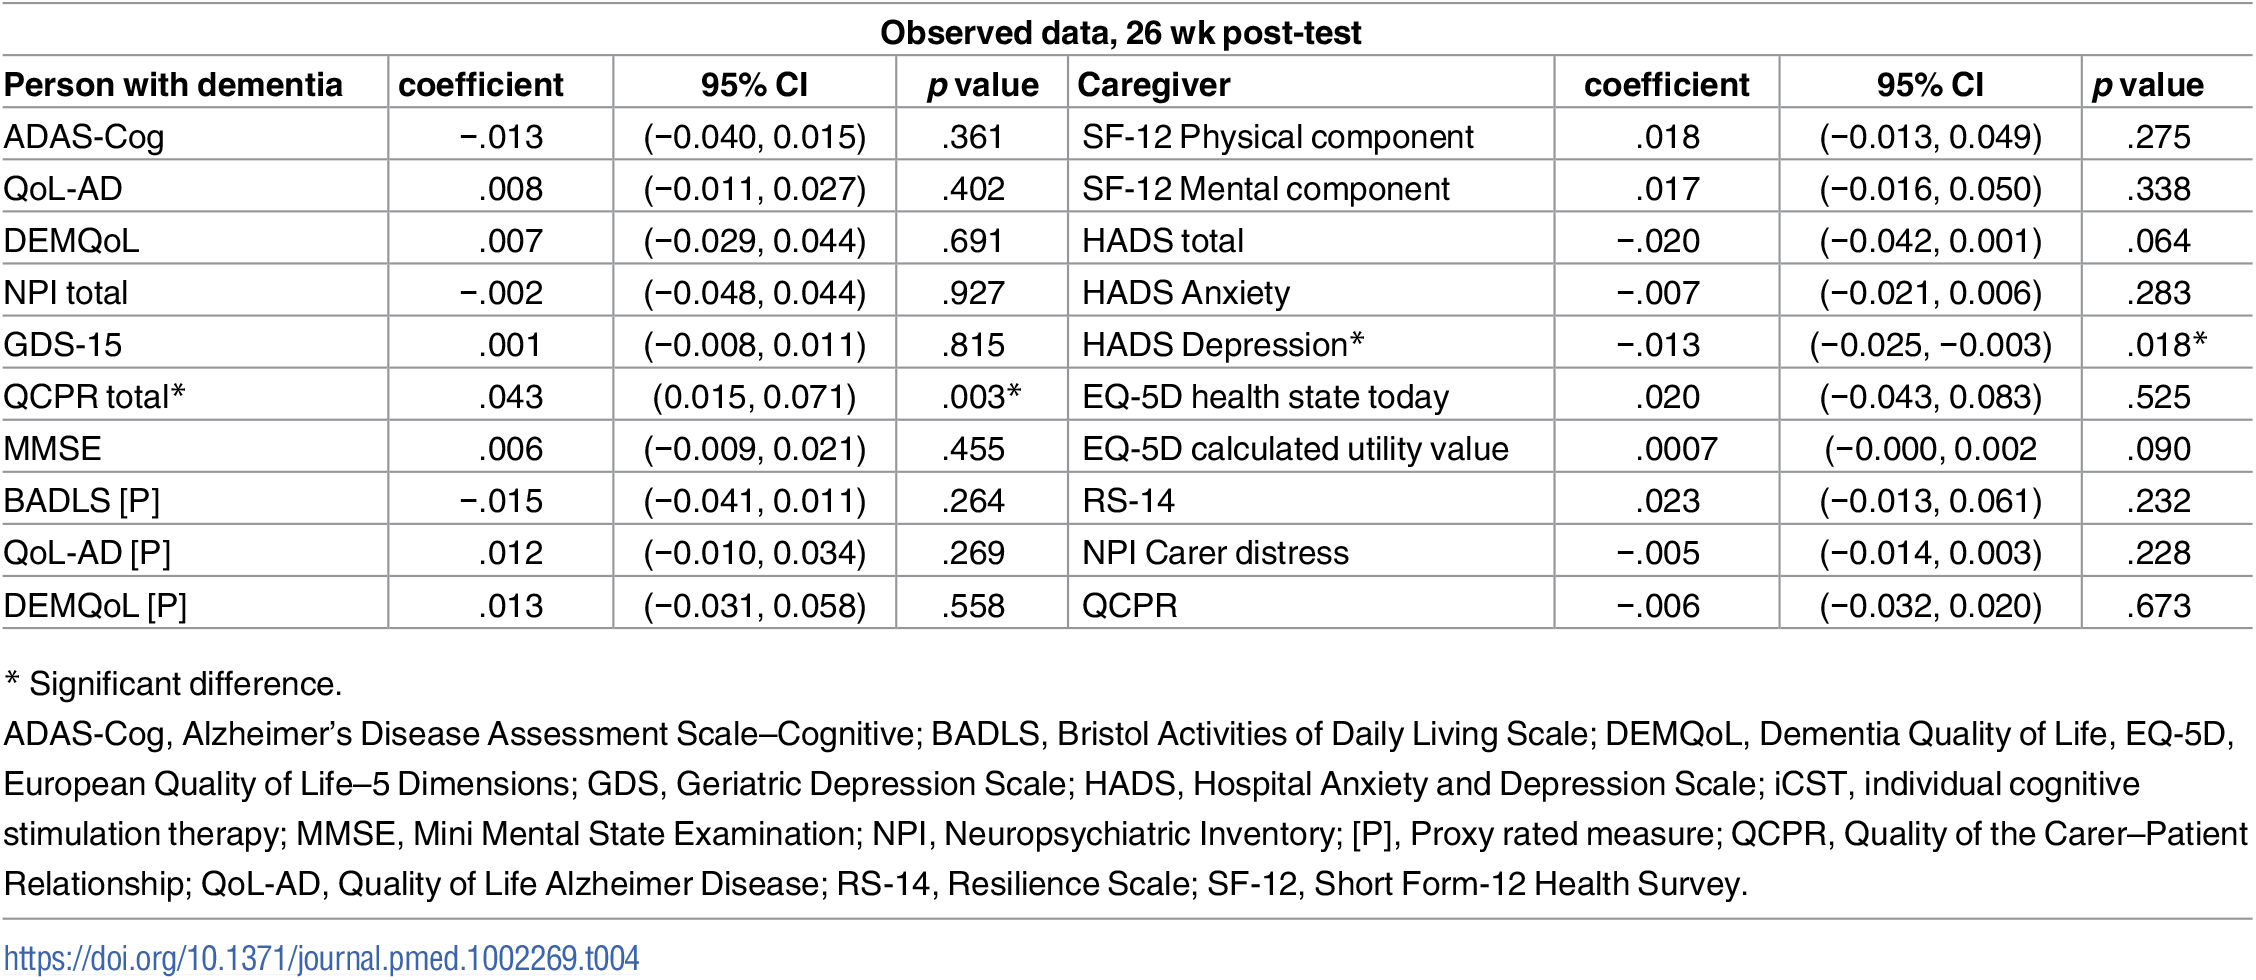 Regression of outcome measures at 26-wk post-test on the number of sessions of iCST attended, adjusting for BL outcome measures, marital status, centre, age, and anticholinesterase inhibitors.